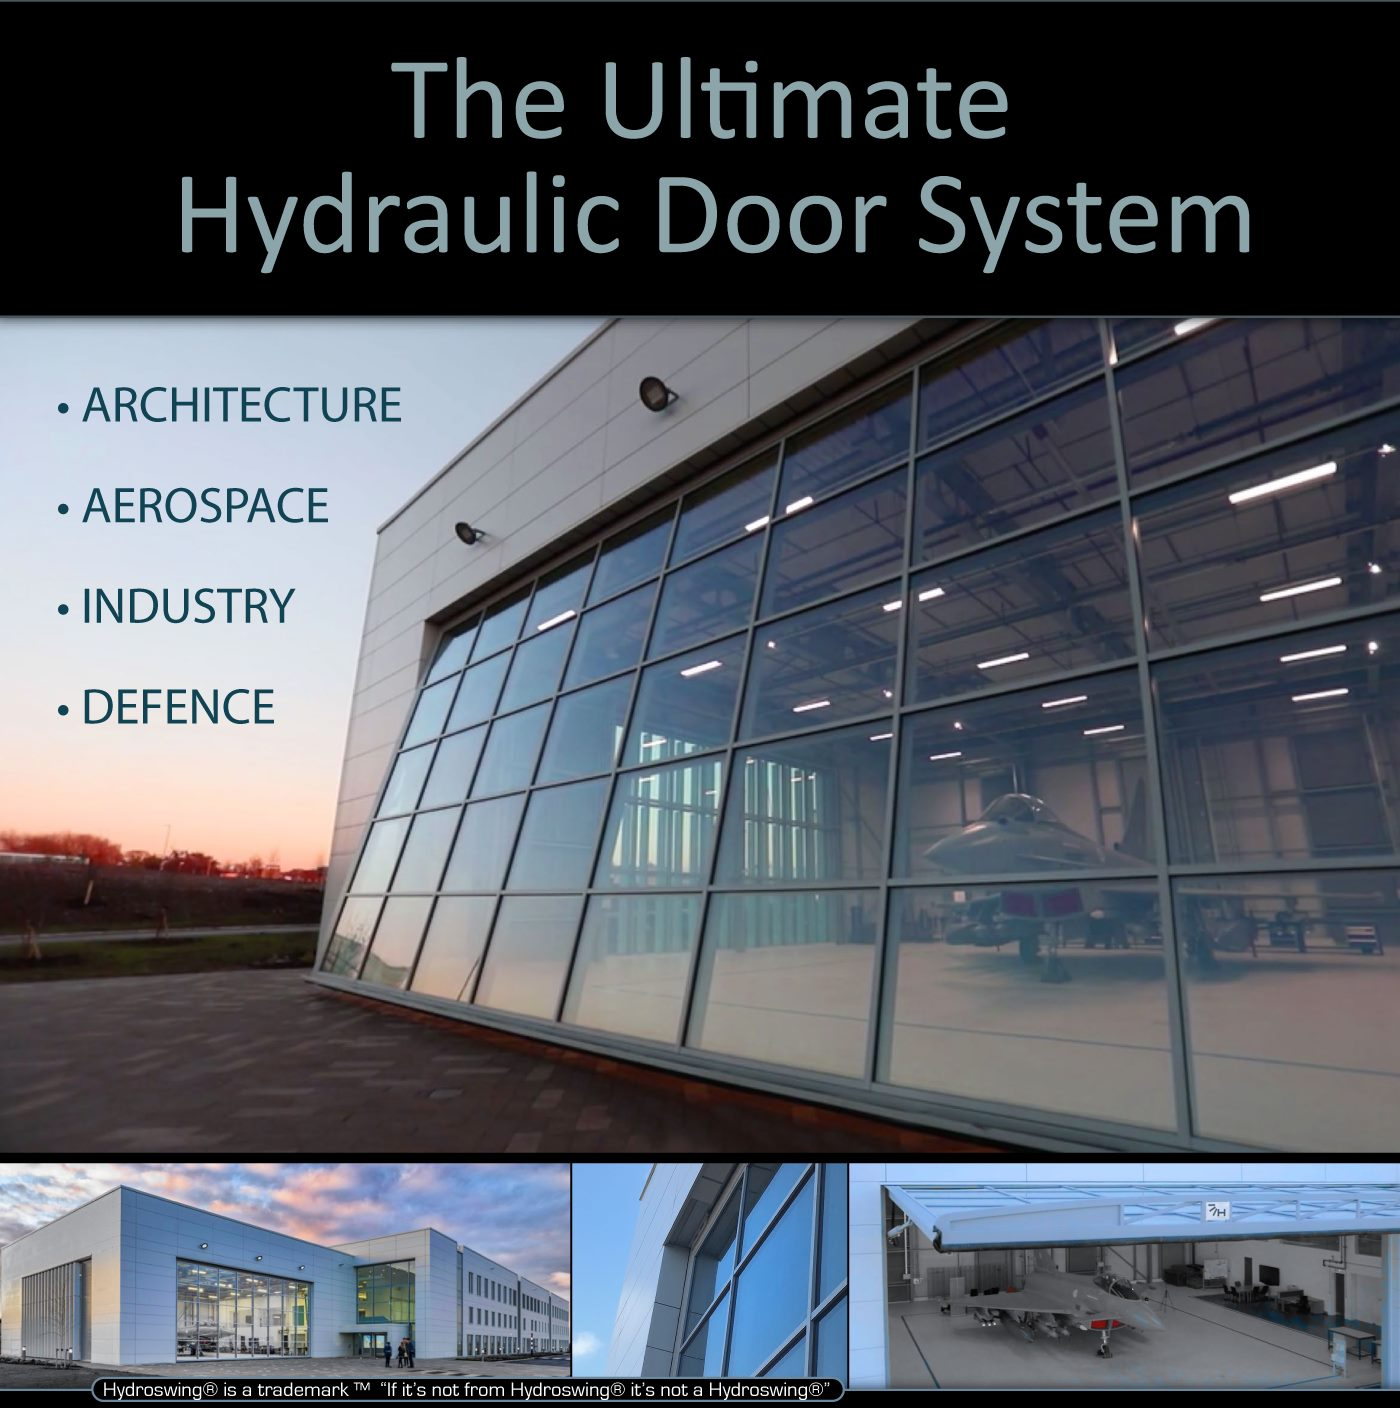 hydroswing hydraulic doors for architecture aerospace industry and defense